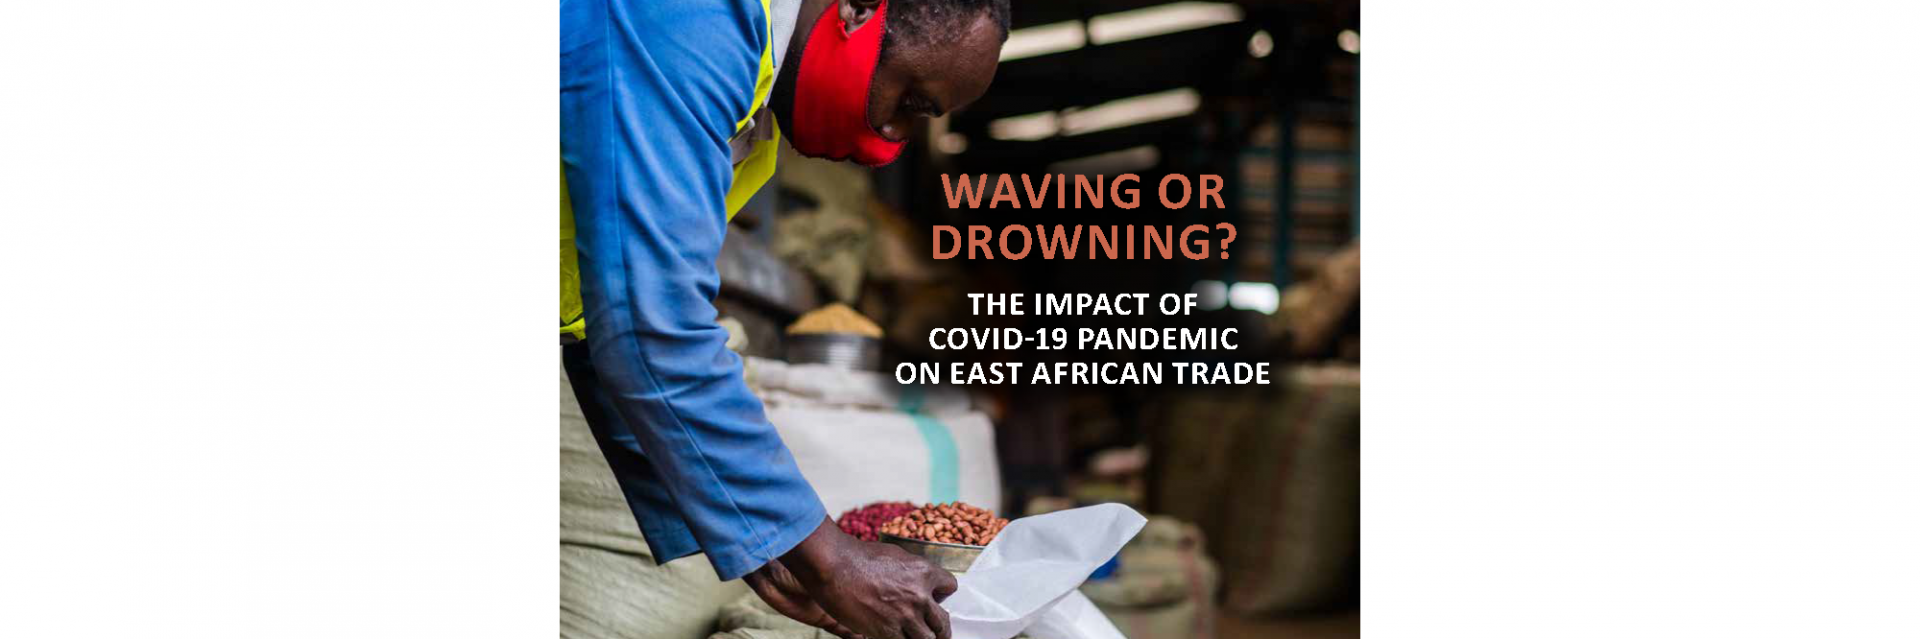 Waving or Drowning? The Impact of the COVID-19 Pandemic on East Africa